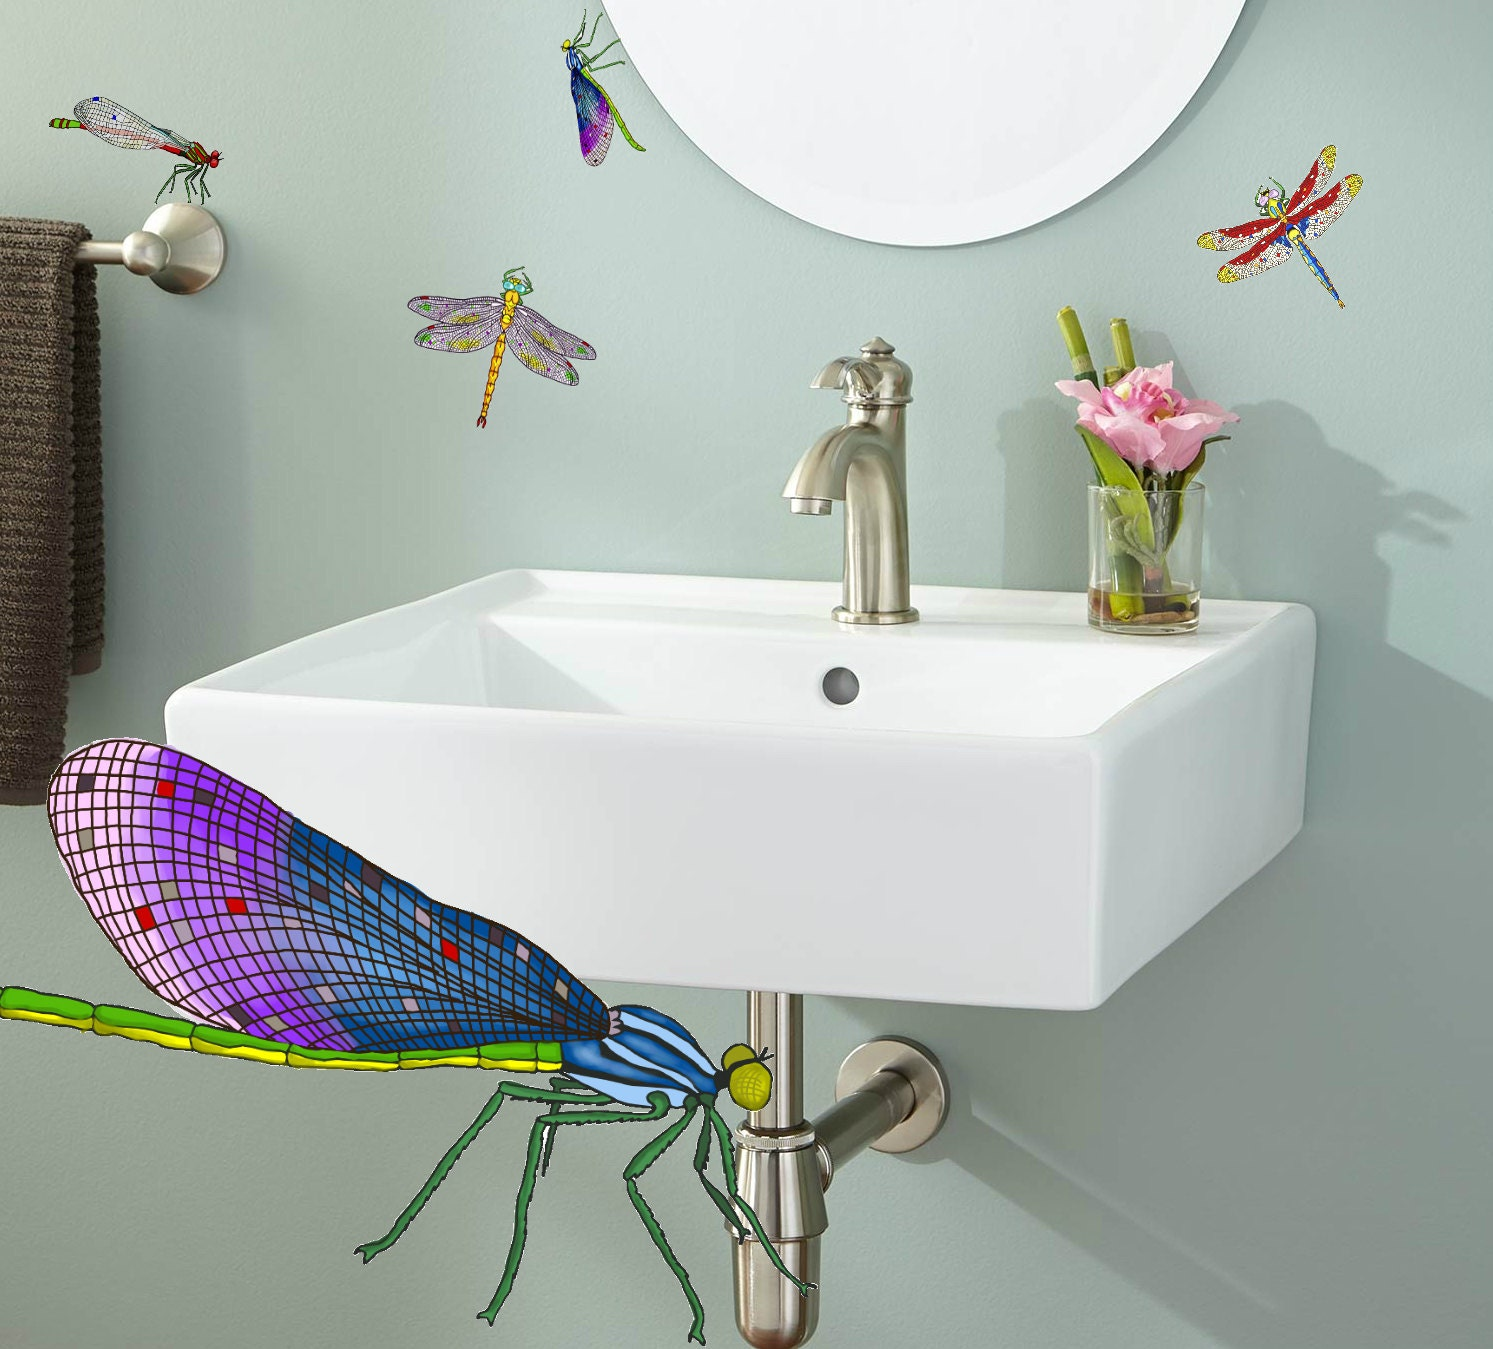 Hand painted dragonfly decals 11 set of by easysweethome for Dragonfly mural